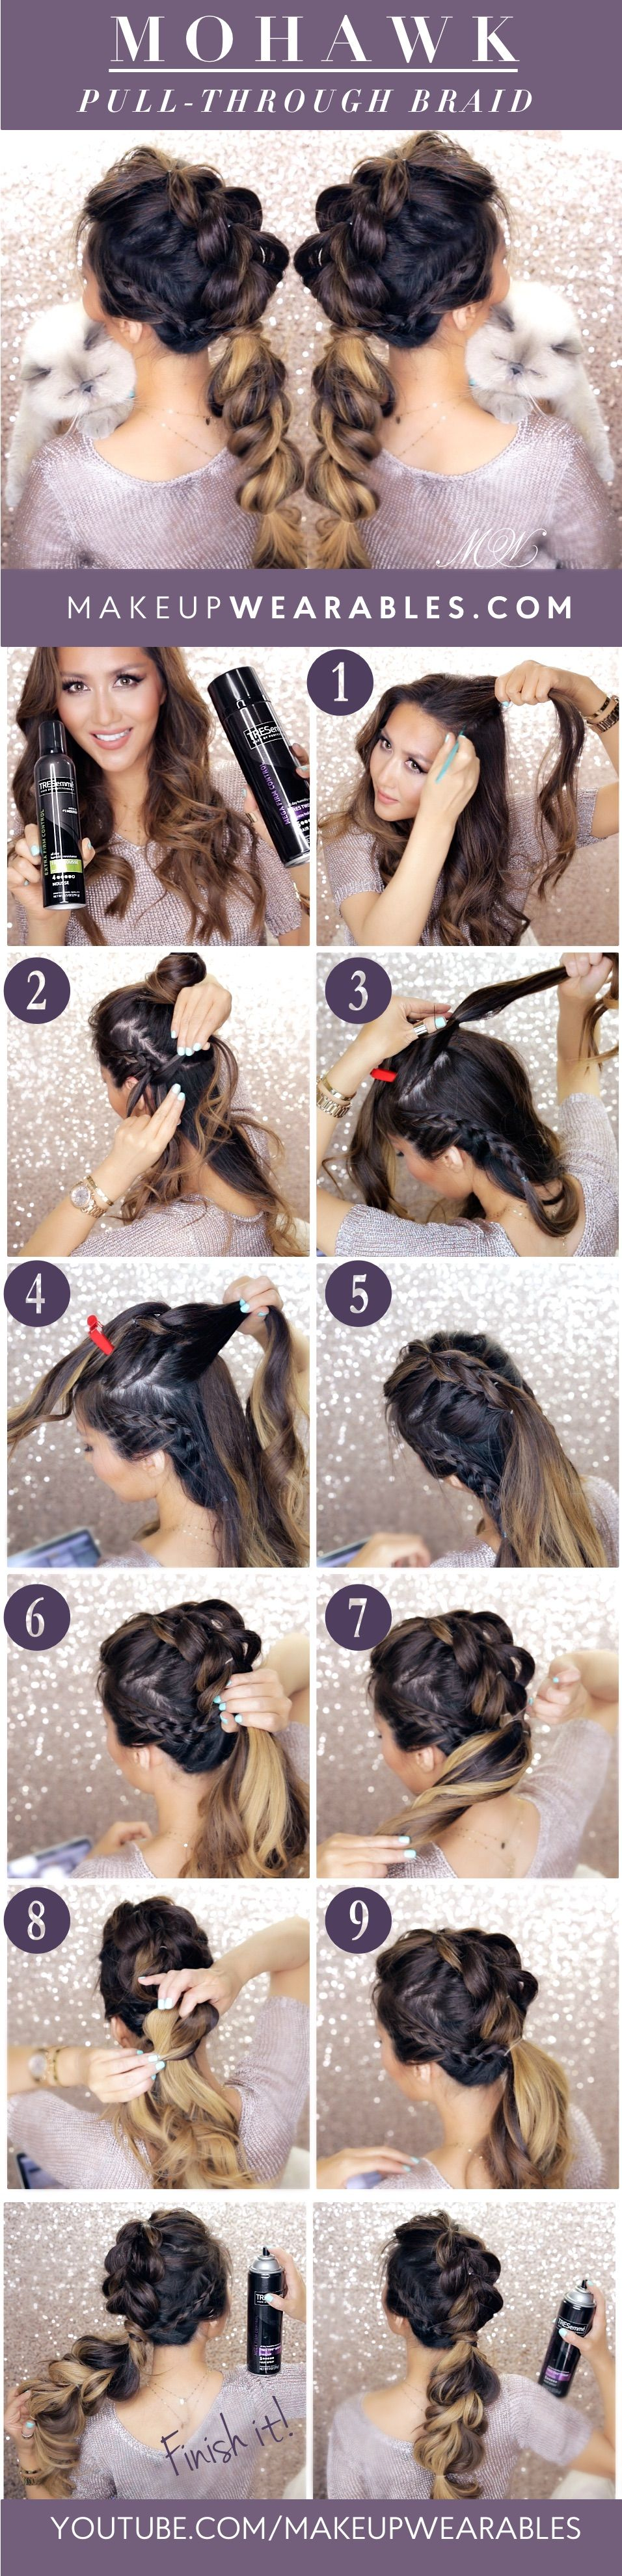 Cute Mohawk Braid Pony Hairstyle hair style